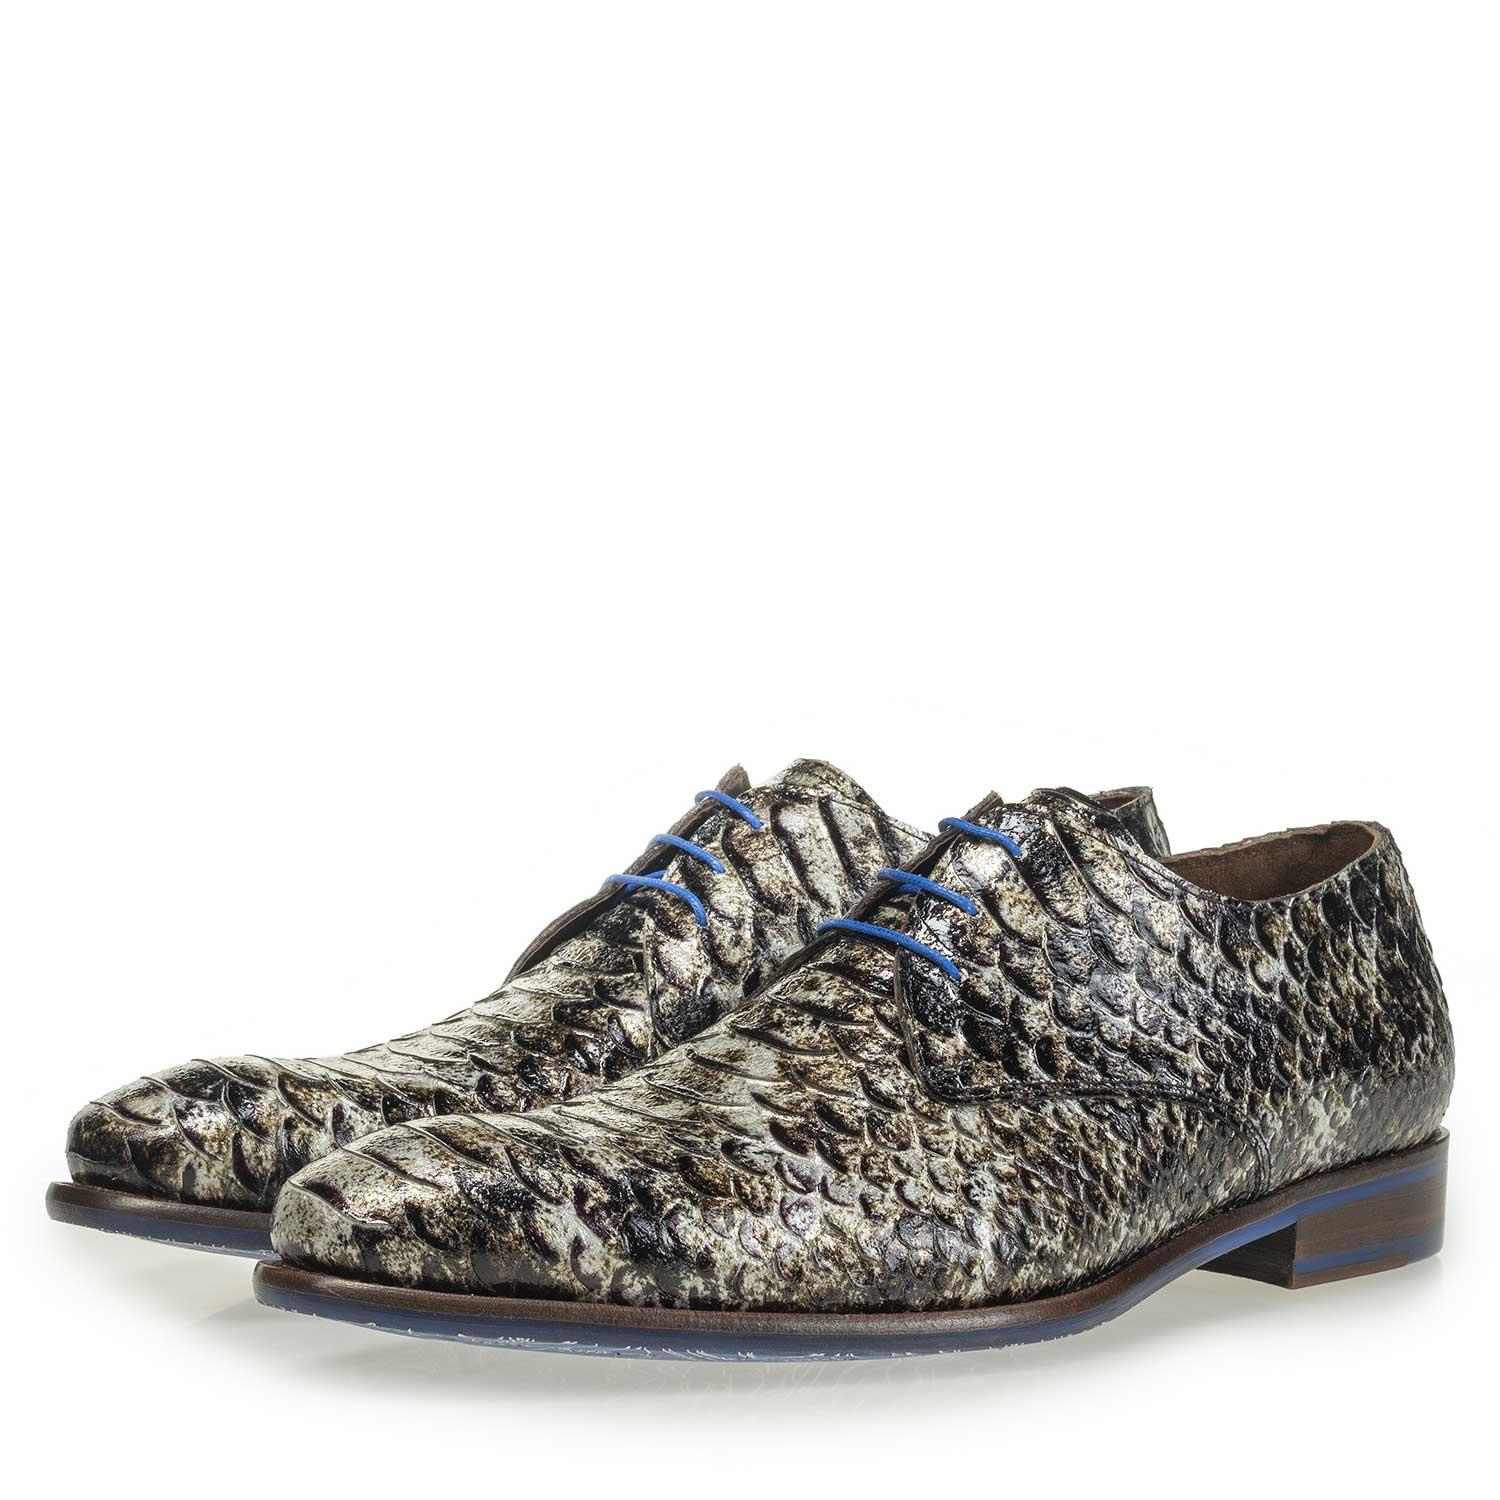 18121/04 - Grey patent leather snake print lace shoe